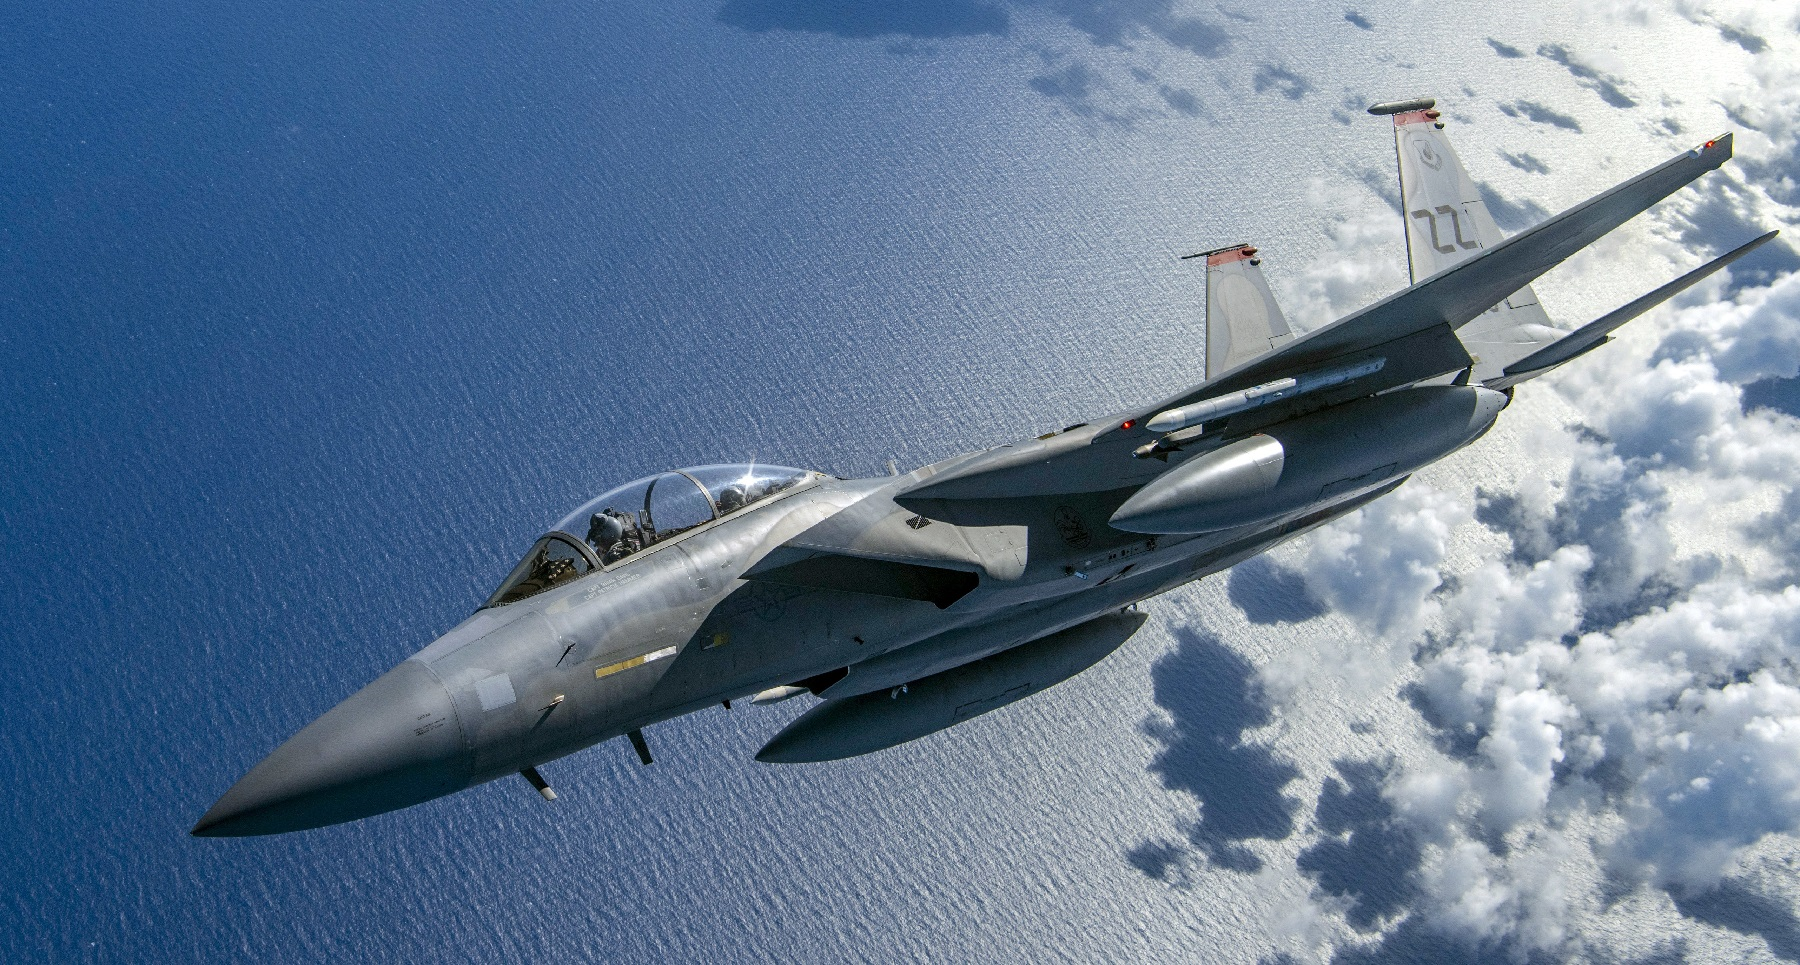 Elite Eagle: The Air Force Could Arm New F-15X Fighters with Hypersonic Missiles